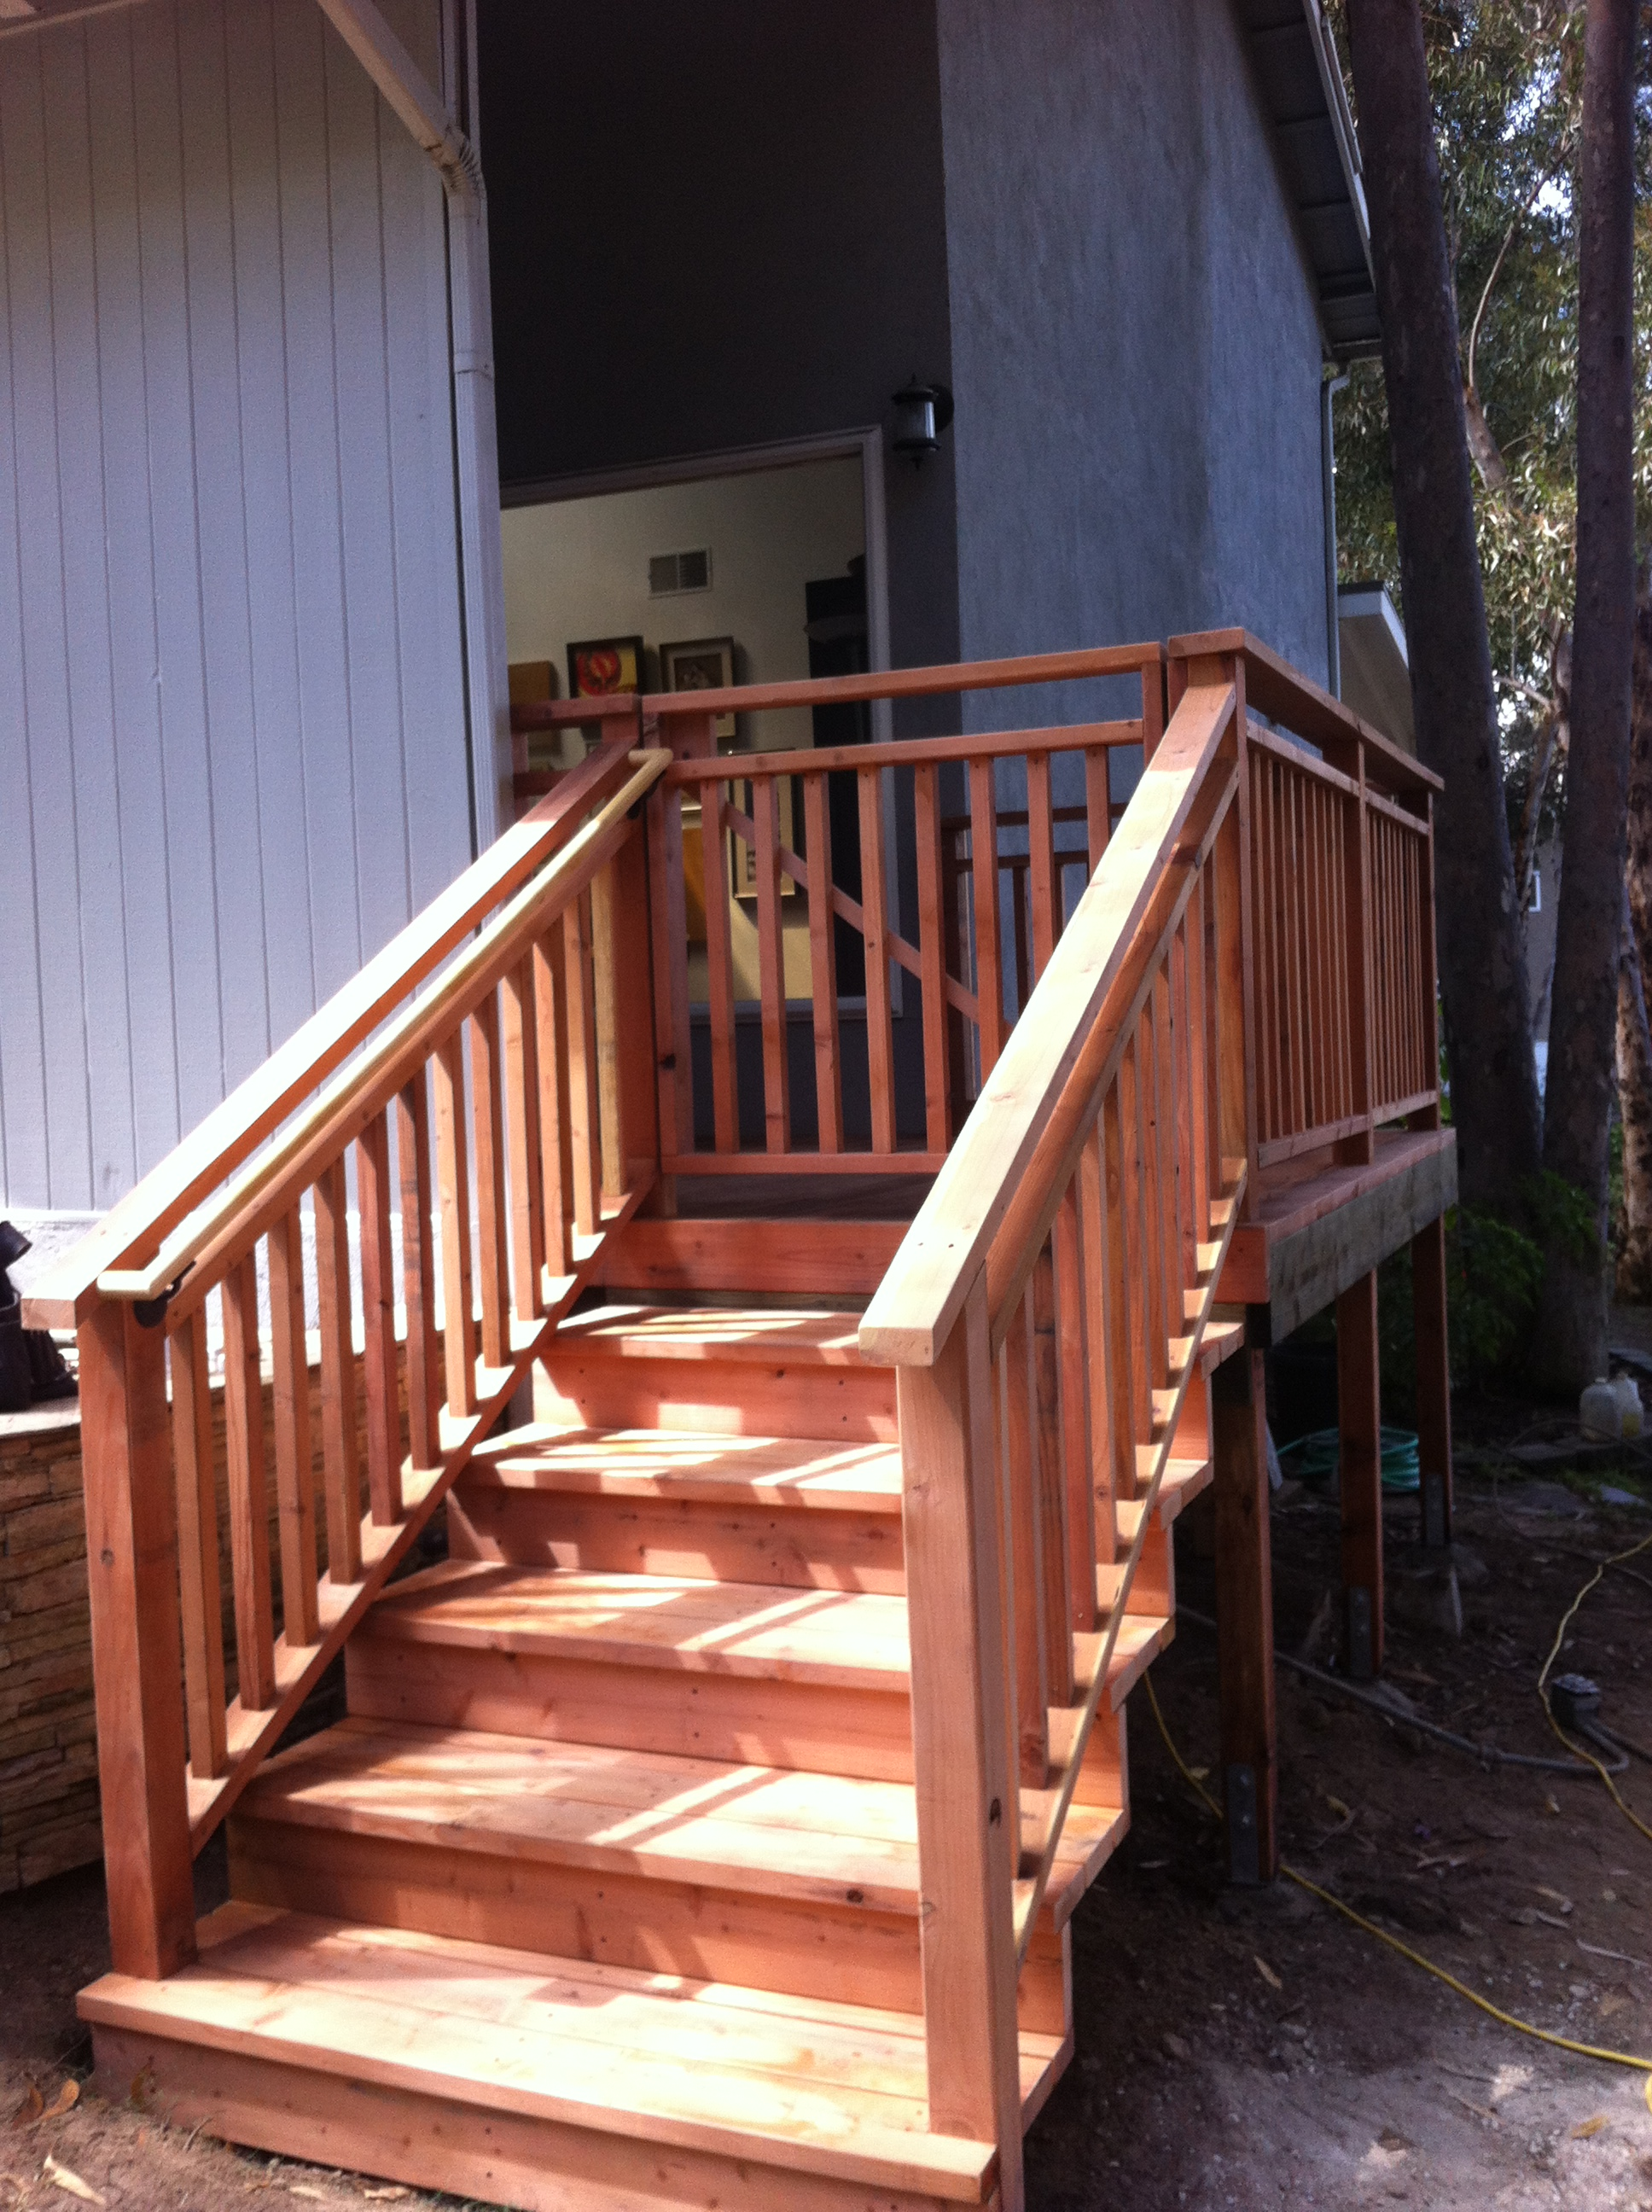 Redwood stairs with handrail